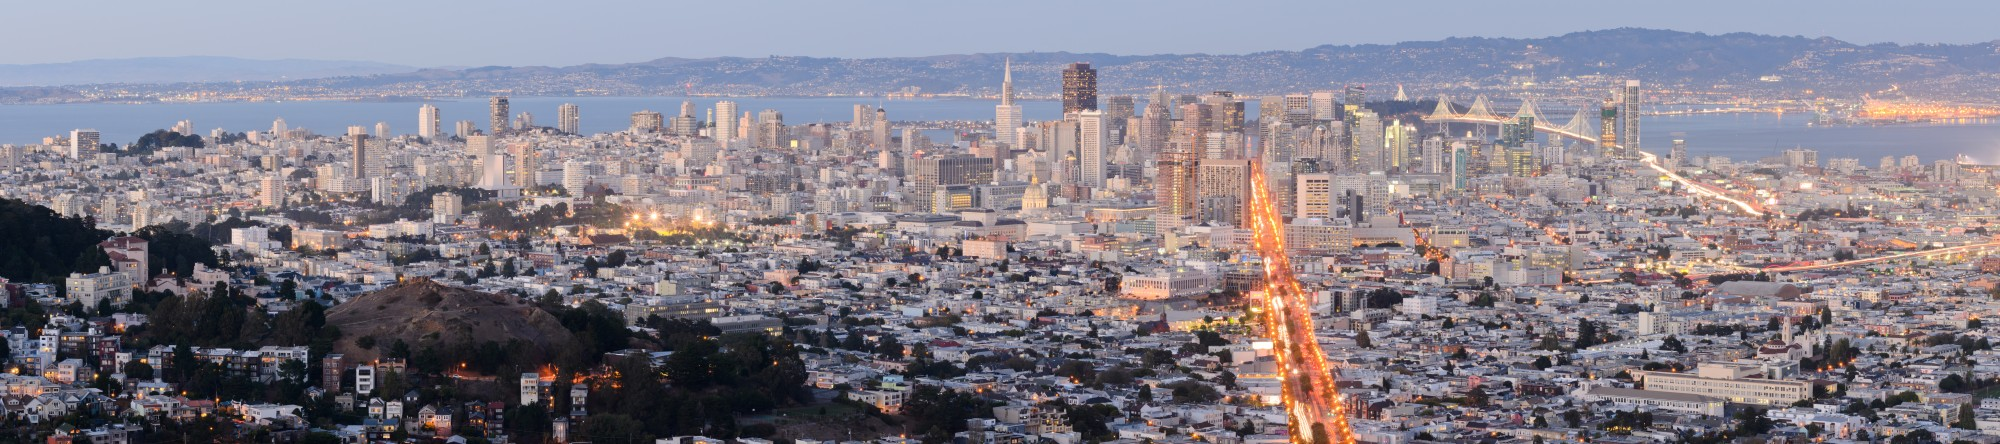 San Francisco from Twin Peaks September 2013 panorama 4